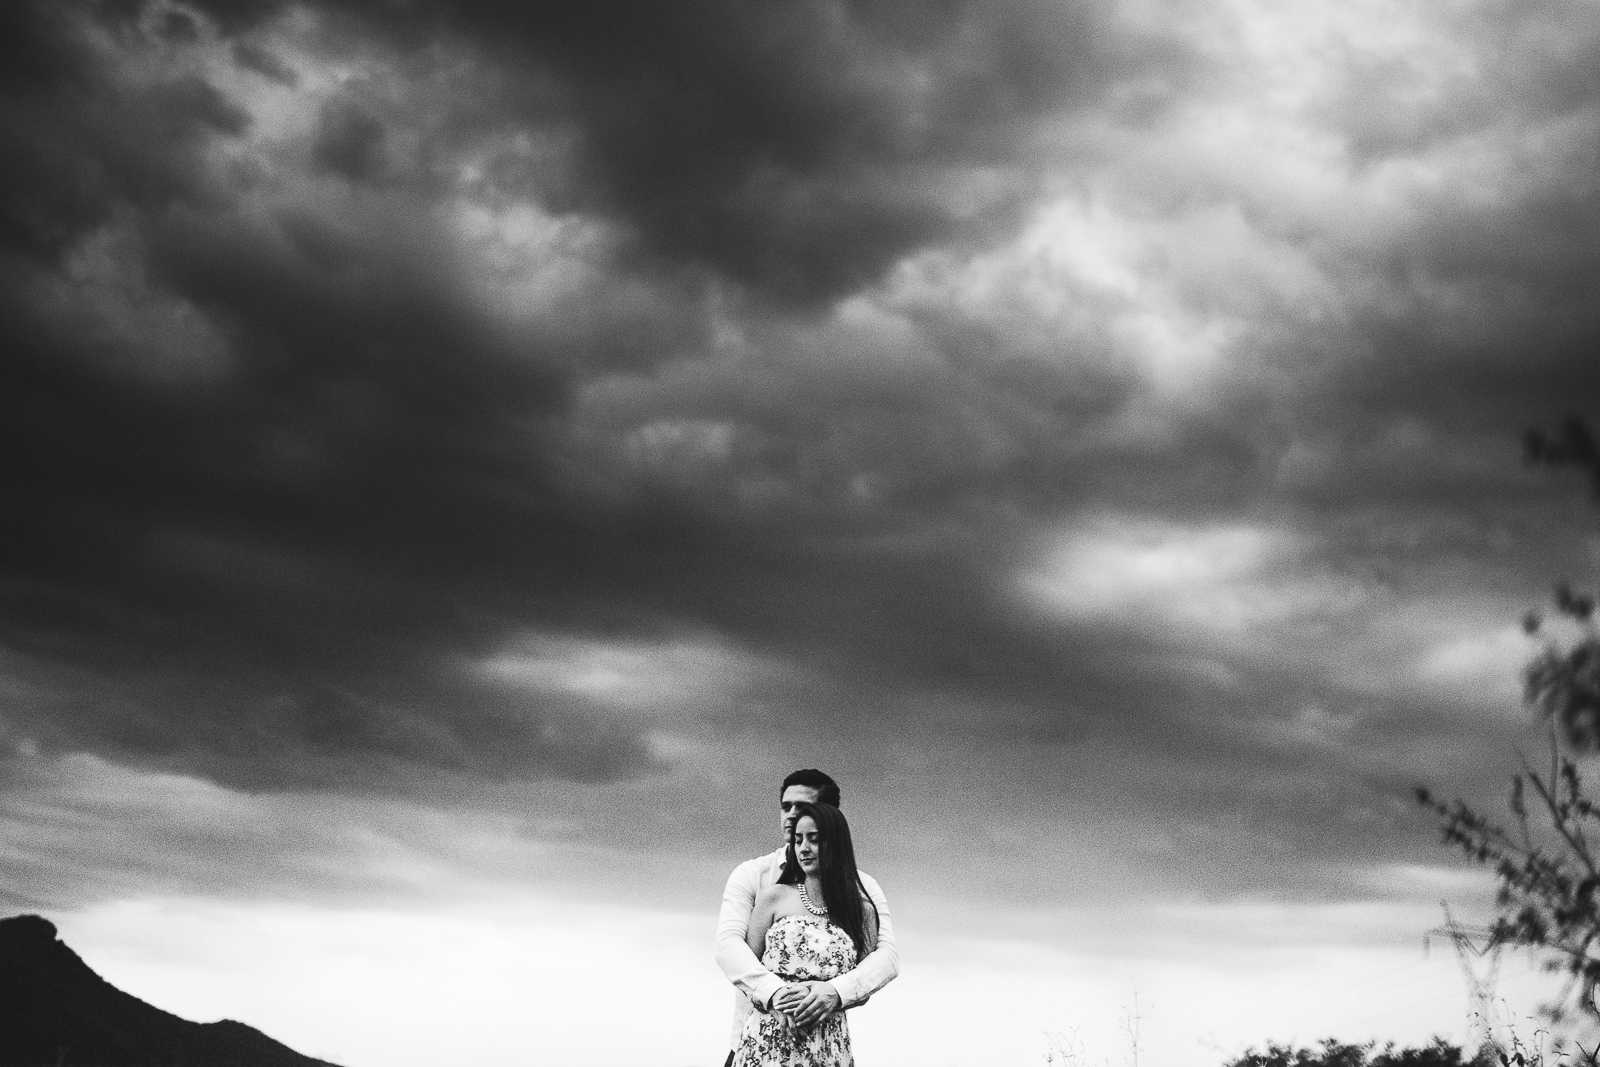 fotografo_mexico_wedding_photographer_esession_preboda_p+a_20